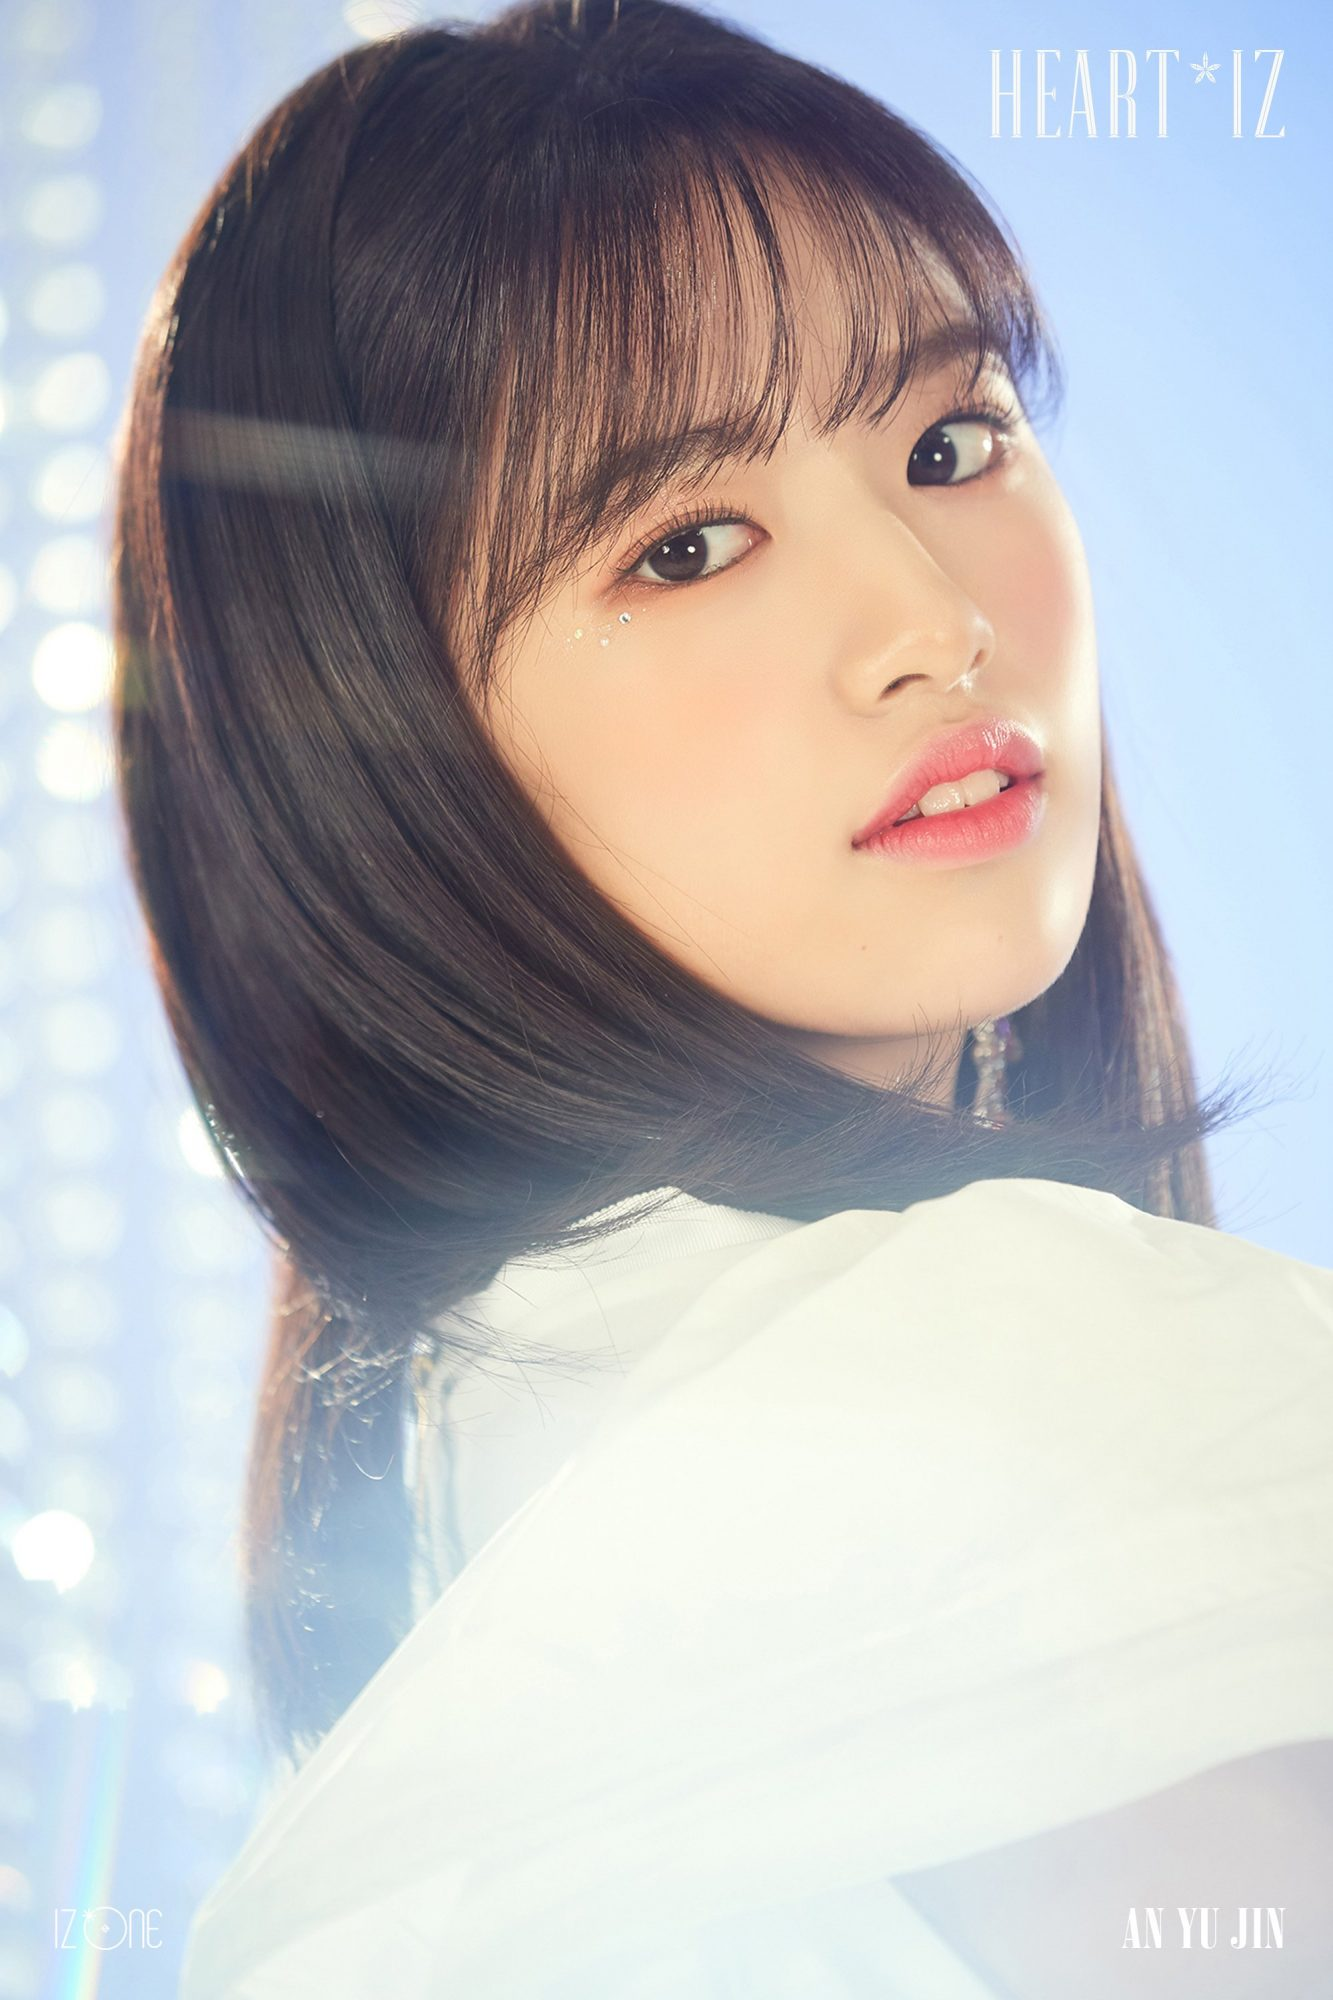 Izone Members Profile, Birthday, Height, Facts and more - Kpop Facts